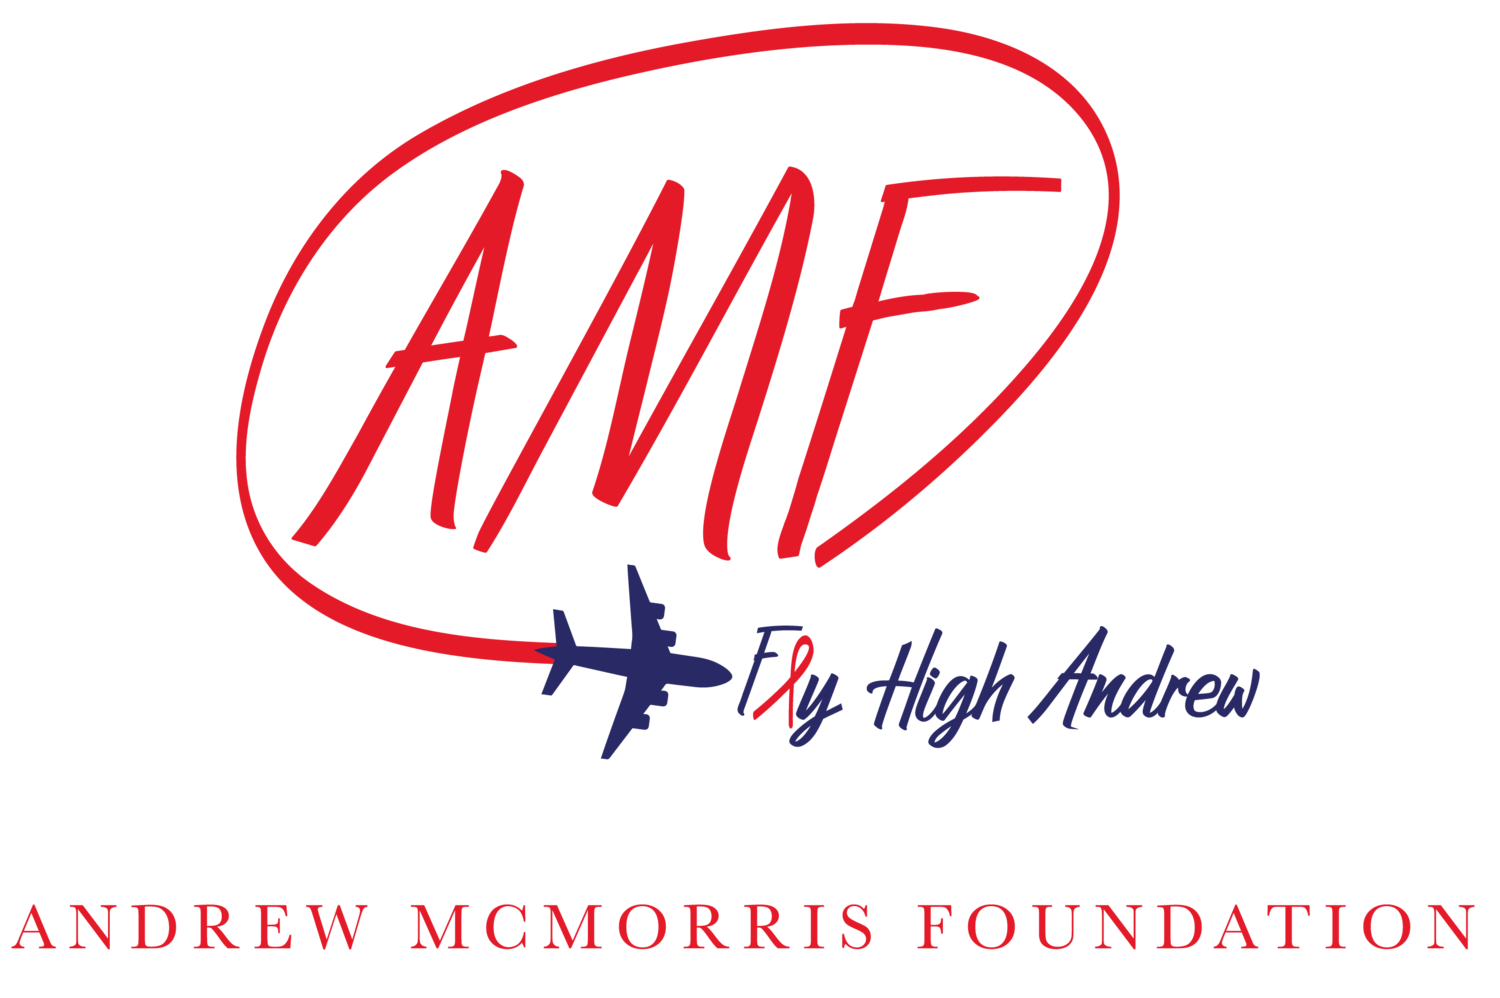 ANDREW MCMORRIS FOUNDATION